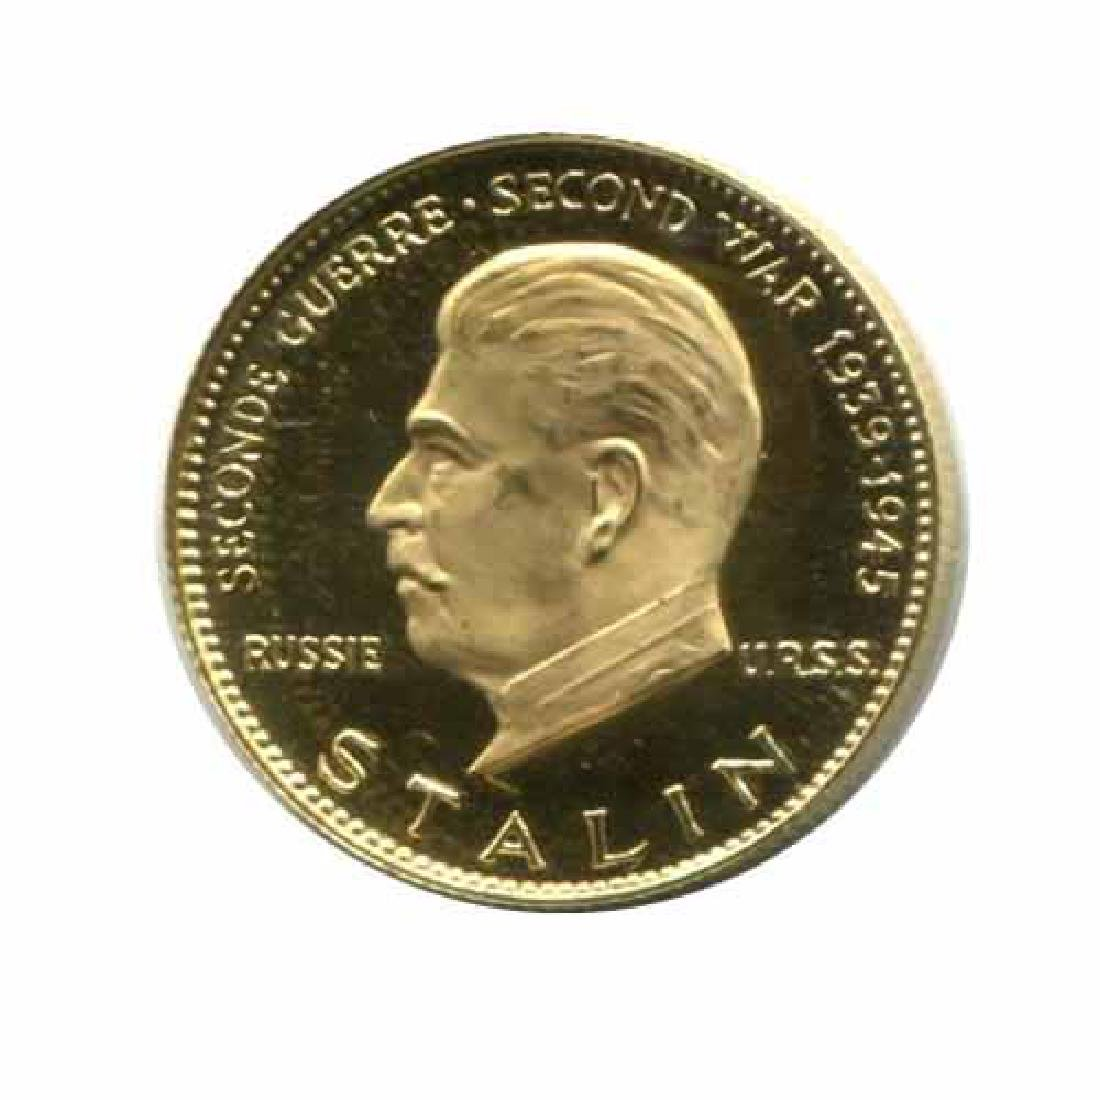 WWII Commemorative Proof Gold Medal 7g. 1958 Stalin